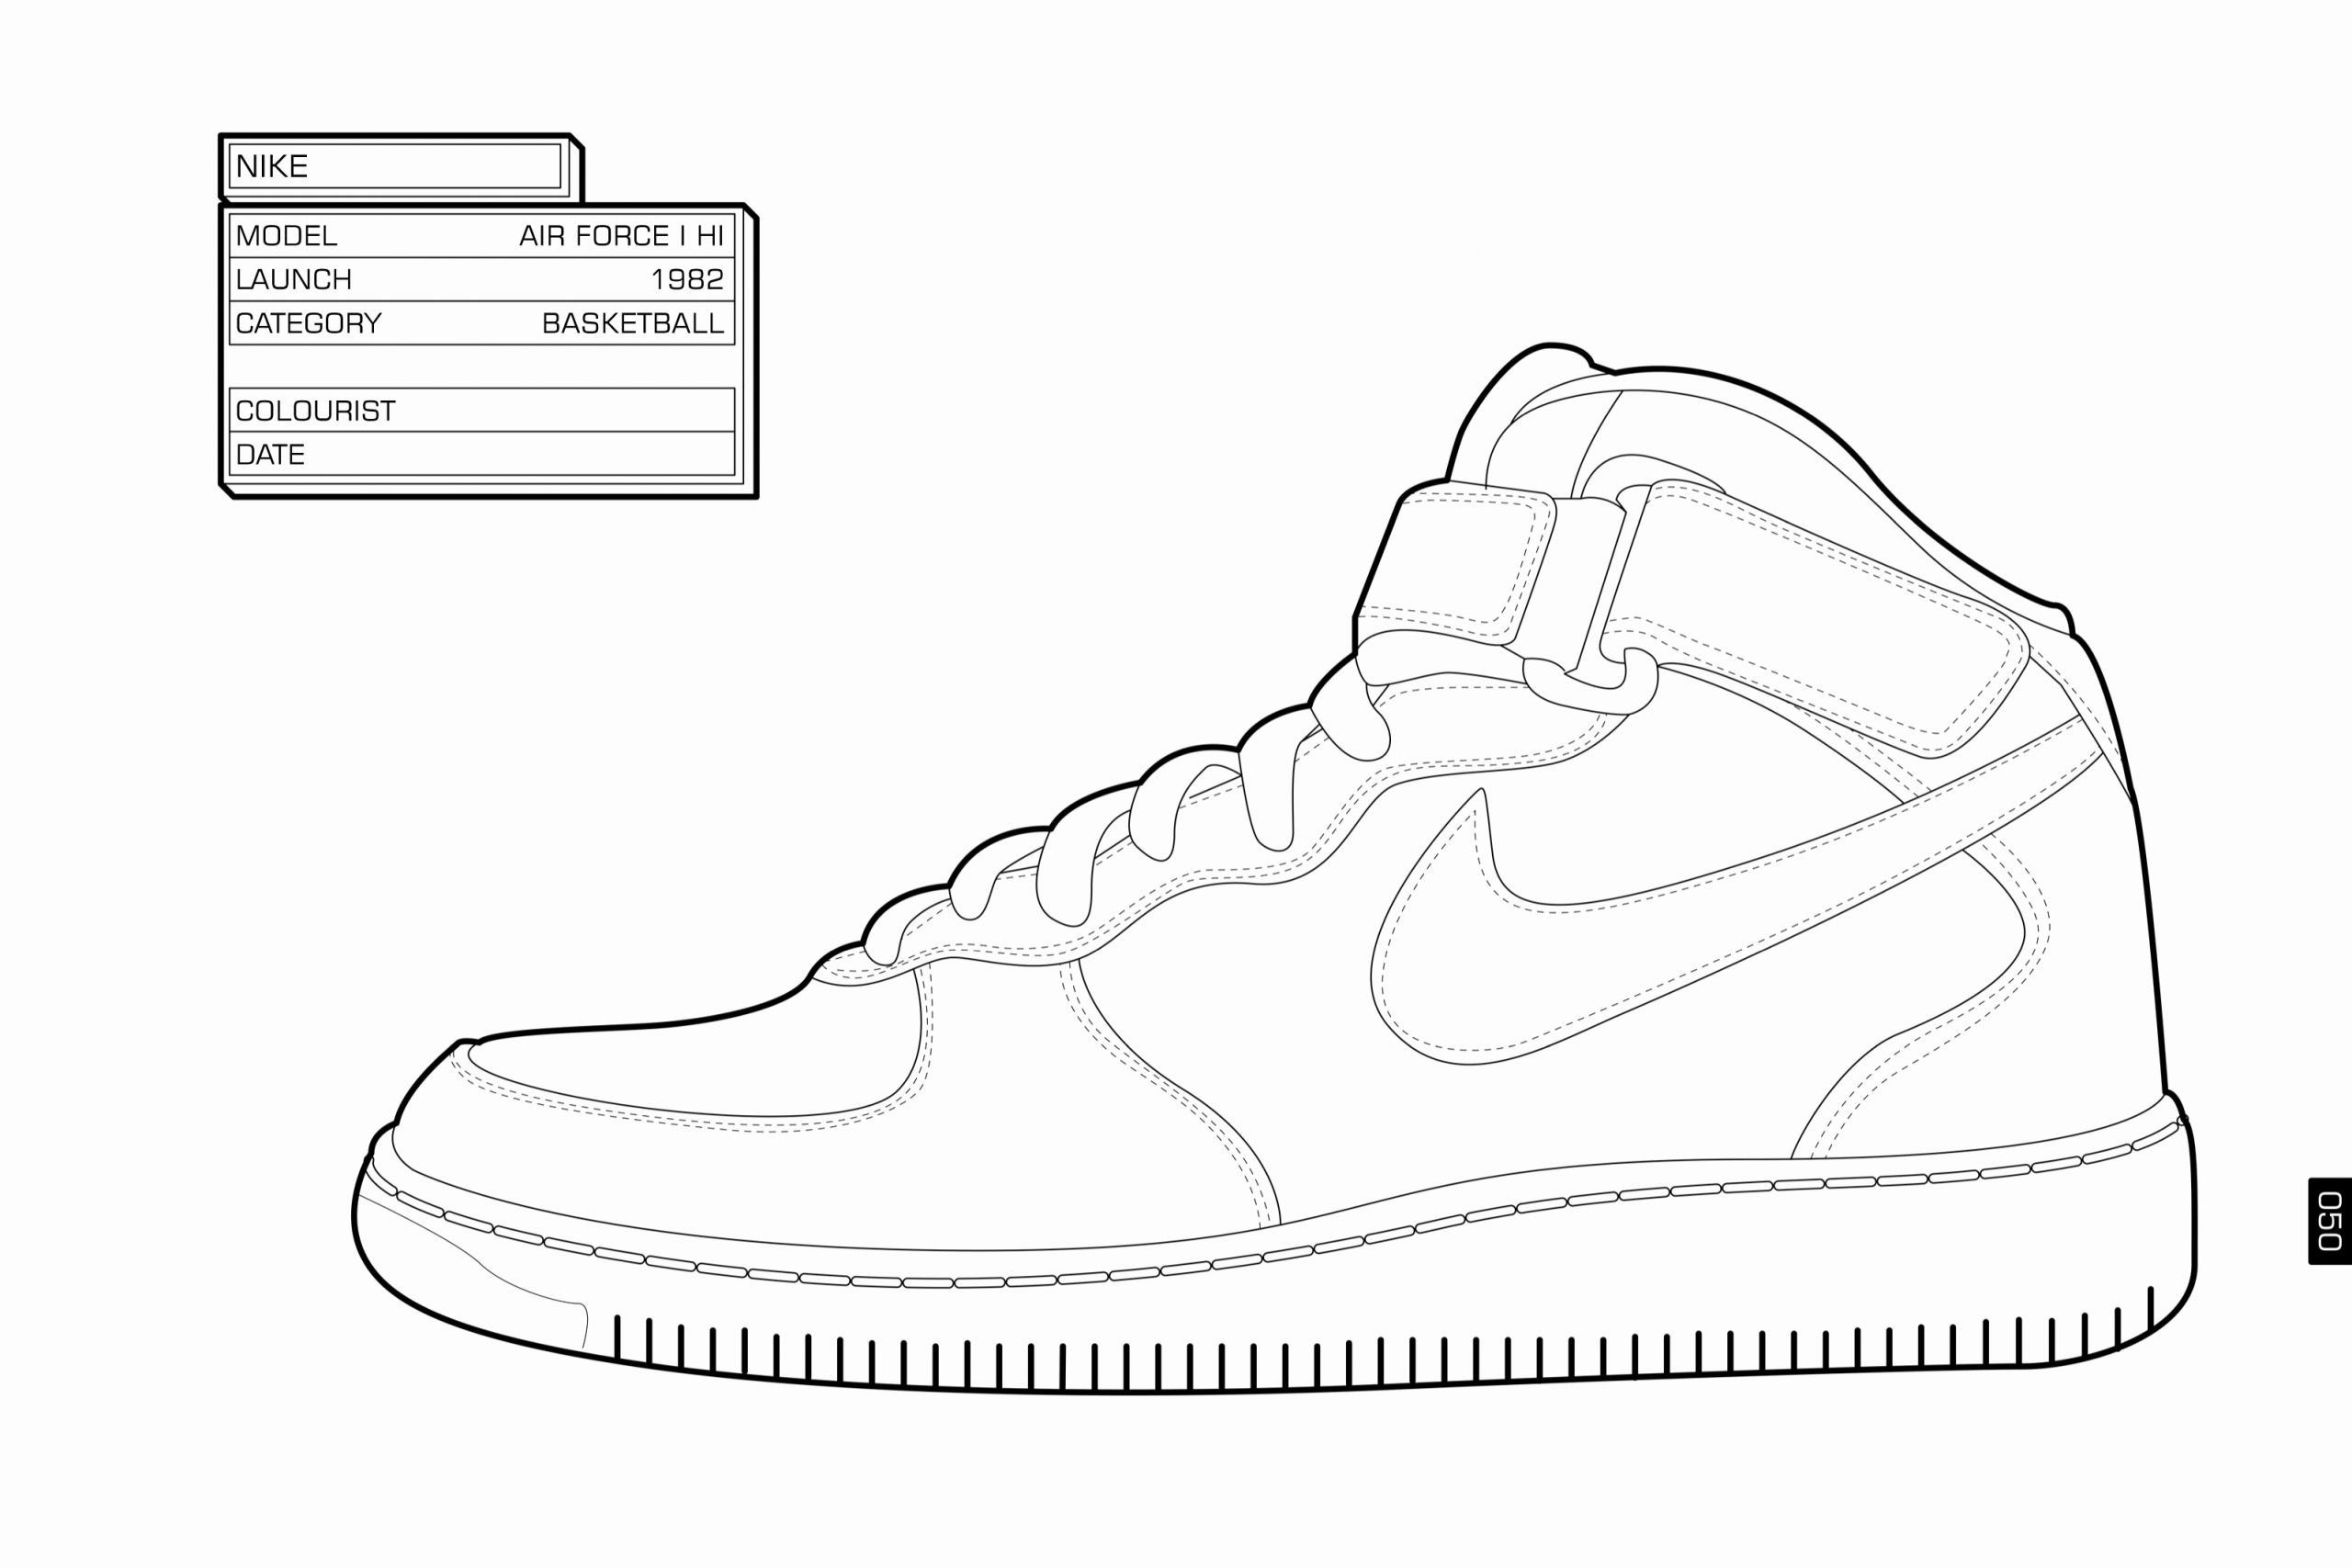 Jordan Shoe Coloring Book Luxury Nike Coloring Pages Coloring Home Shoes Drawing Cool Nike Shoes Jordan Shoes